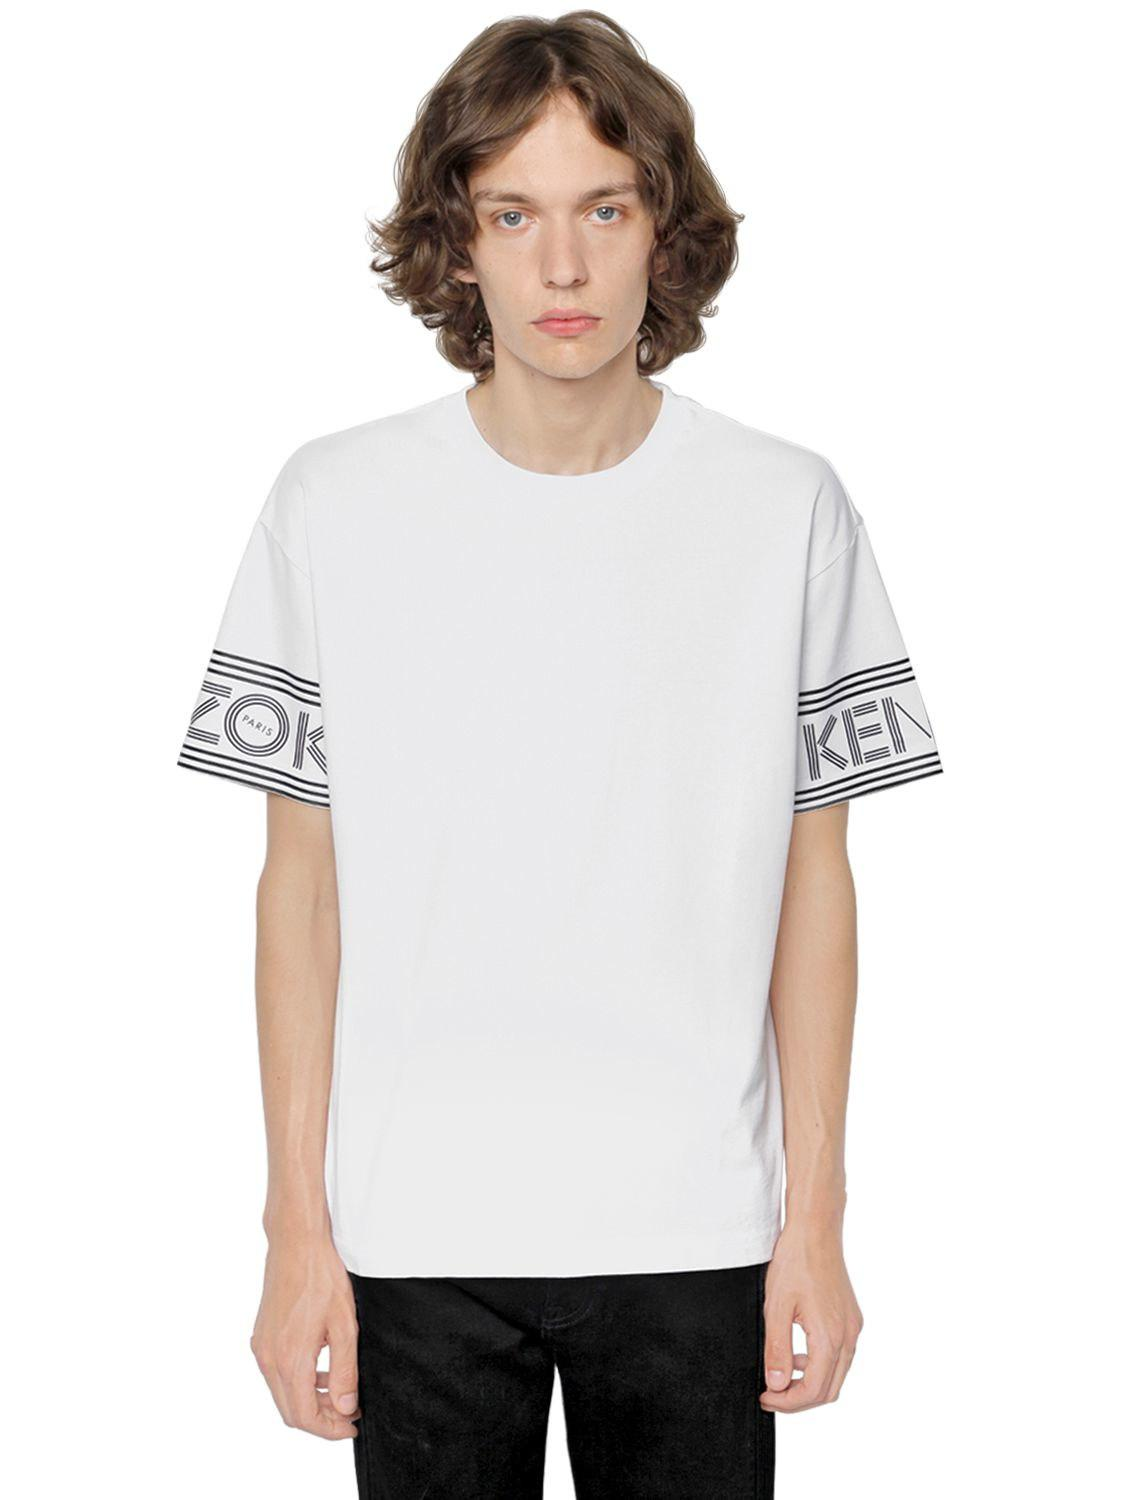 c2c4ae1d2 KENZO Logo Printed Cotton Jersey T-shirt in White for Men - Lyst